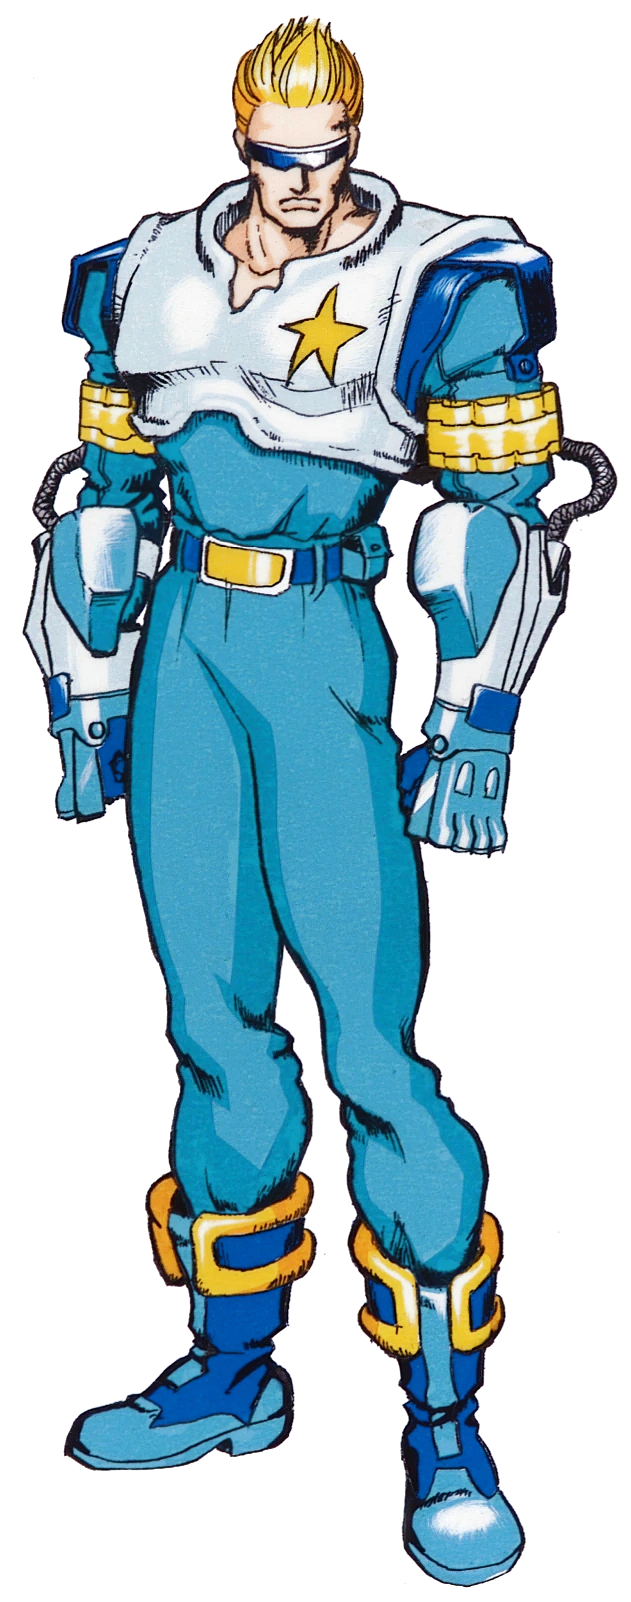 Captain Commando (character)